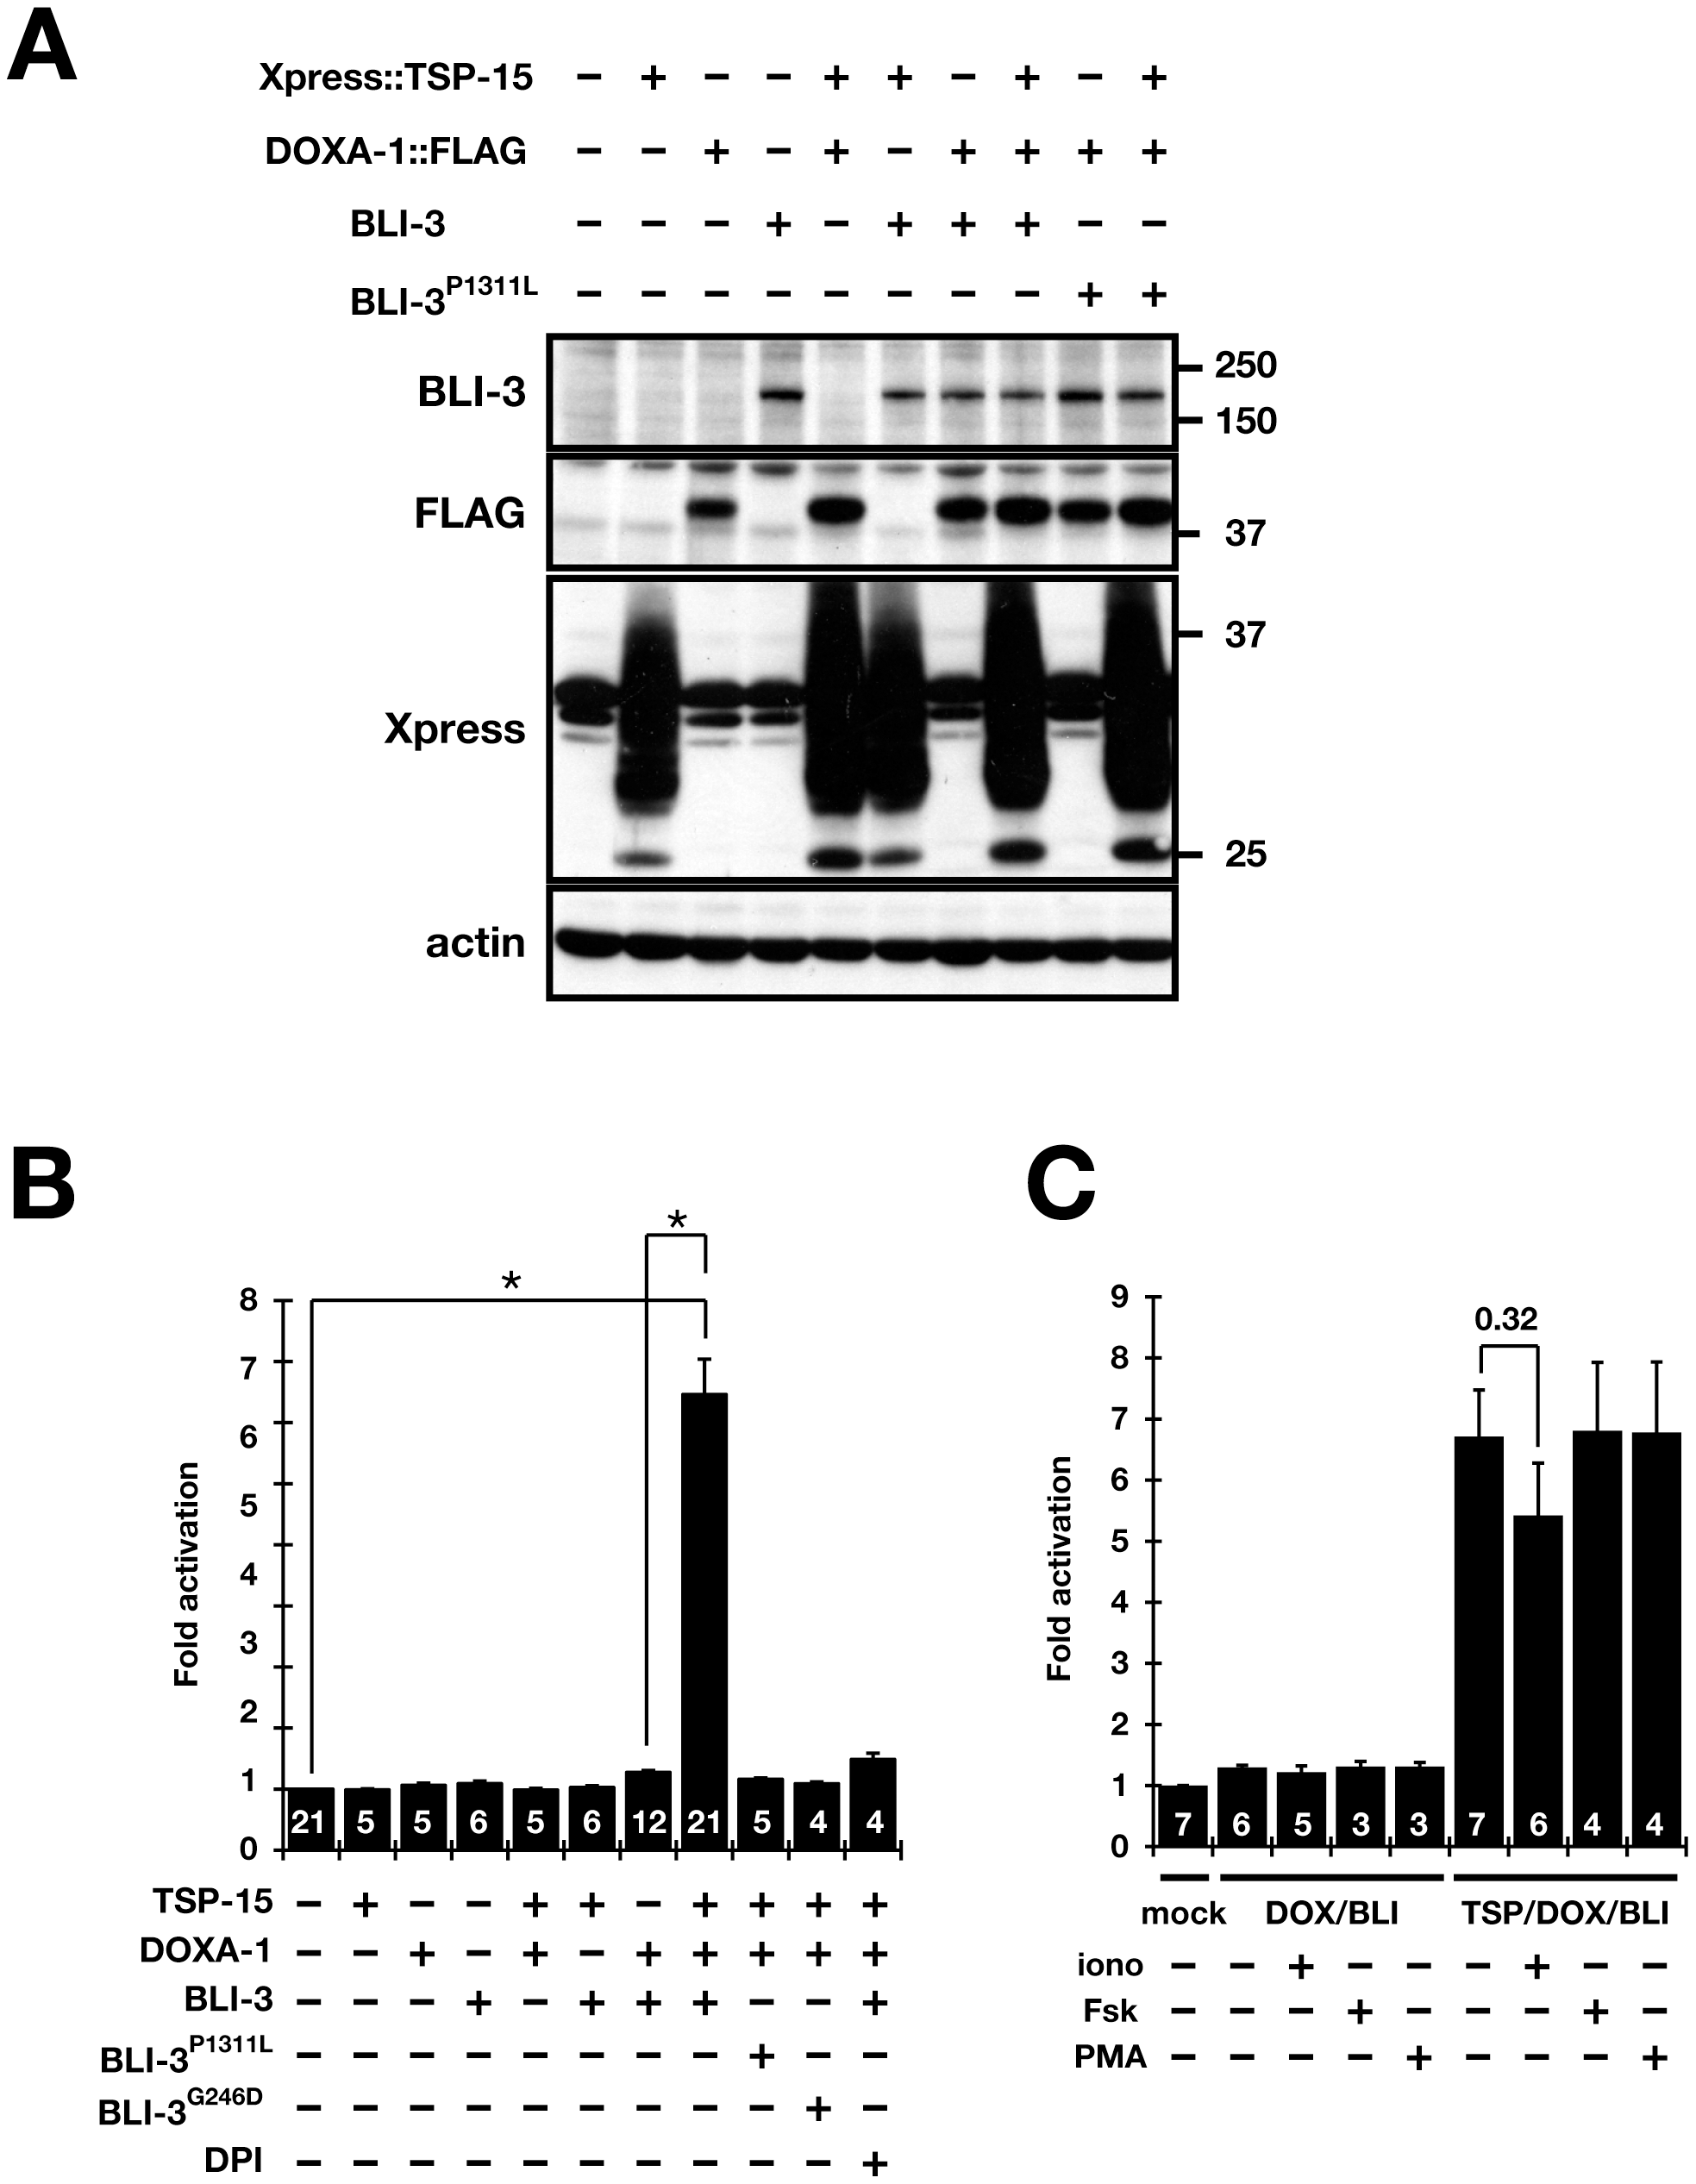 Both TSP-15 and DOXA-1 are required for H<sub>2</sub>O<sub>2</sub> production by BLI-3 in mammalian cells.